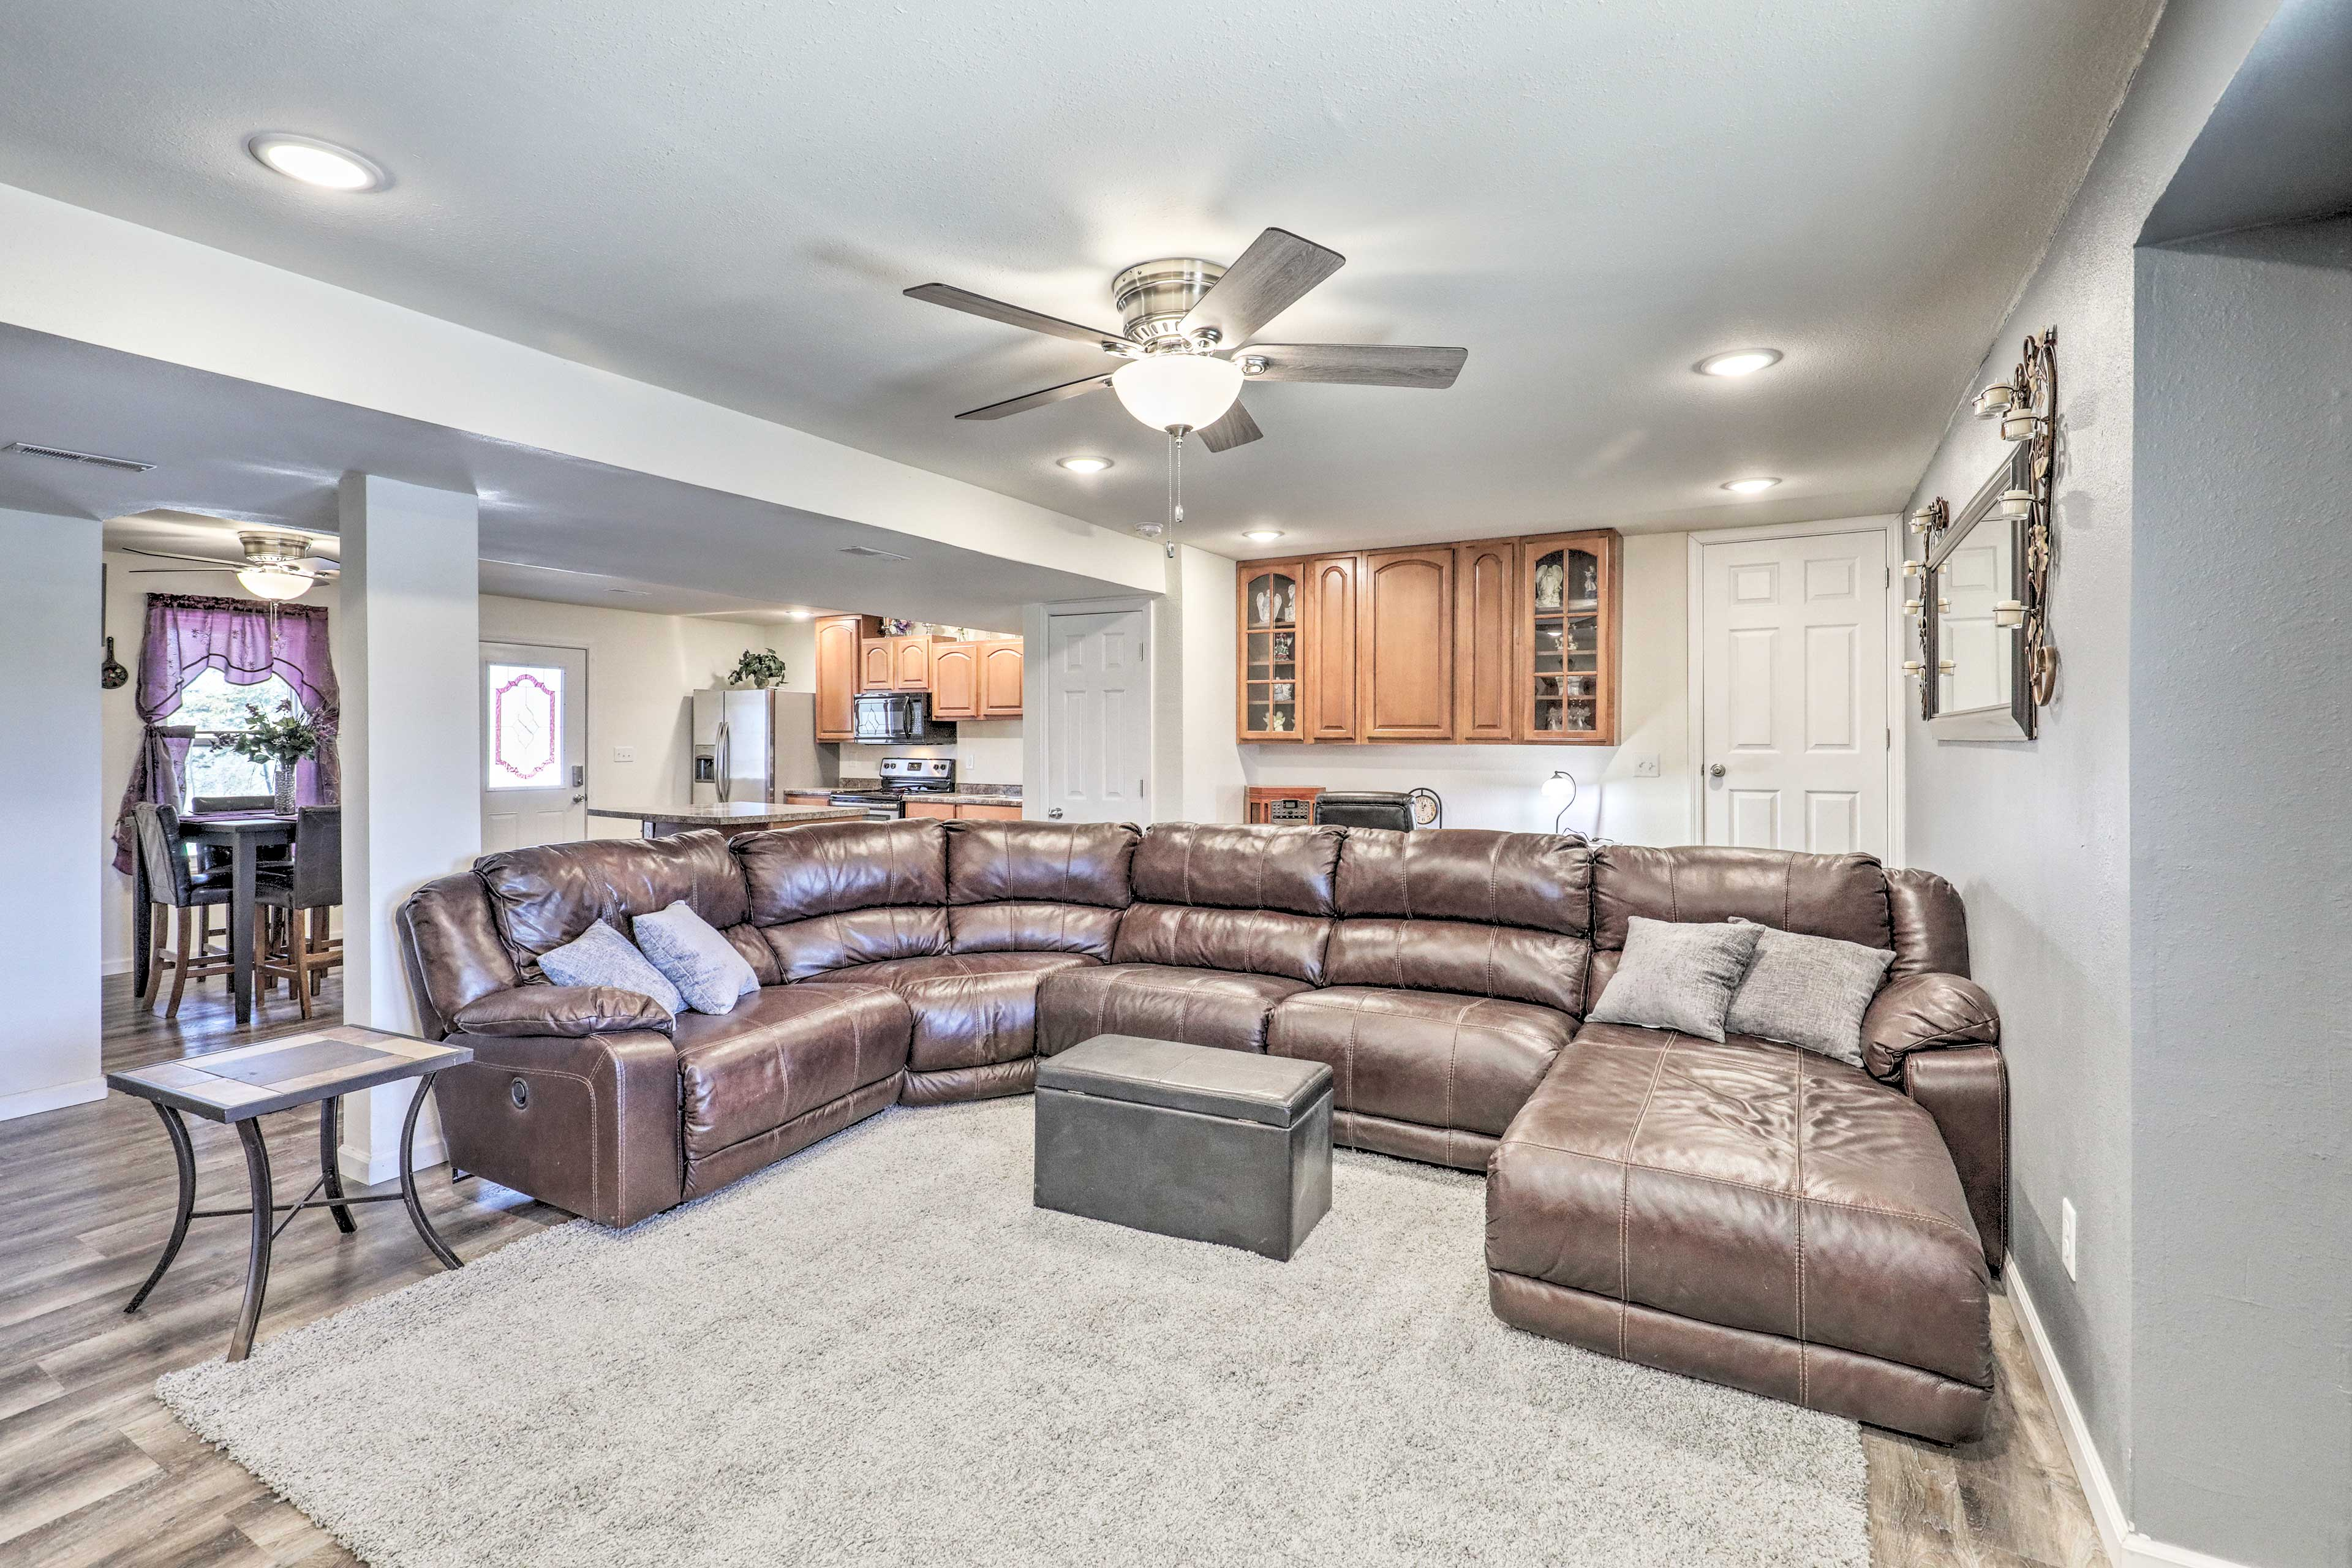 Kick back on the wraparound sectional couch.